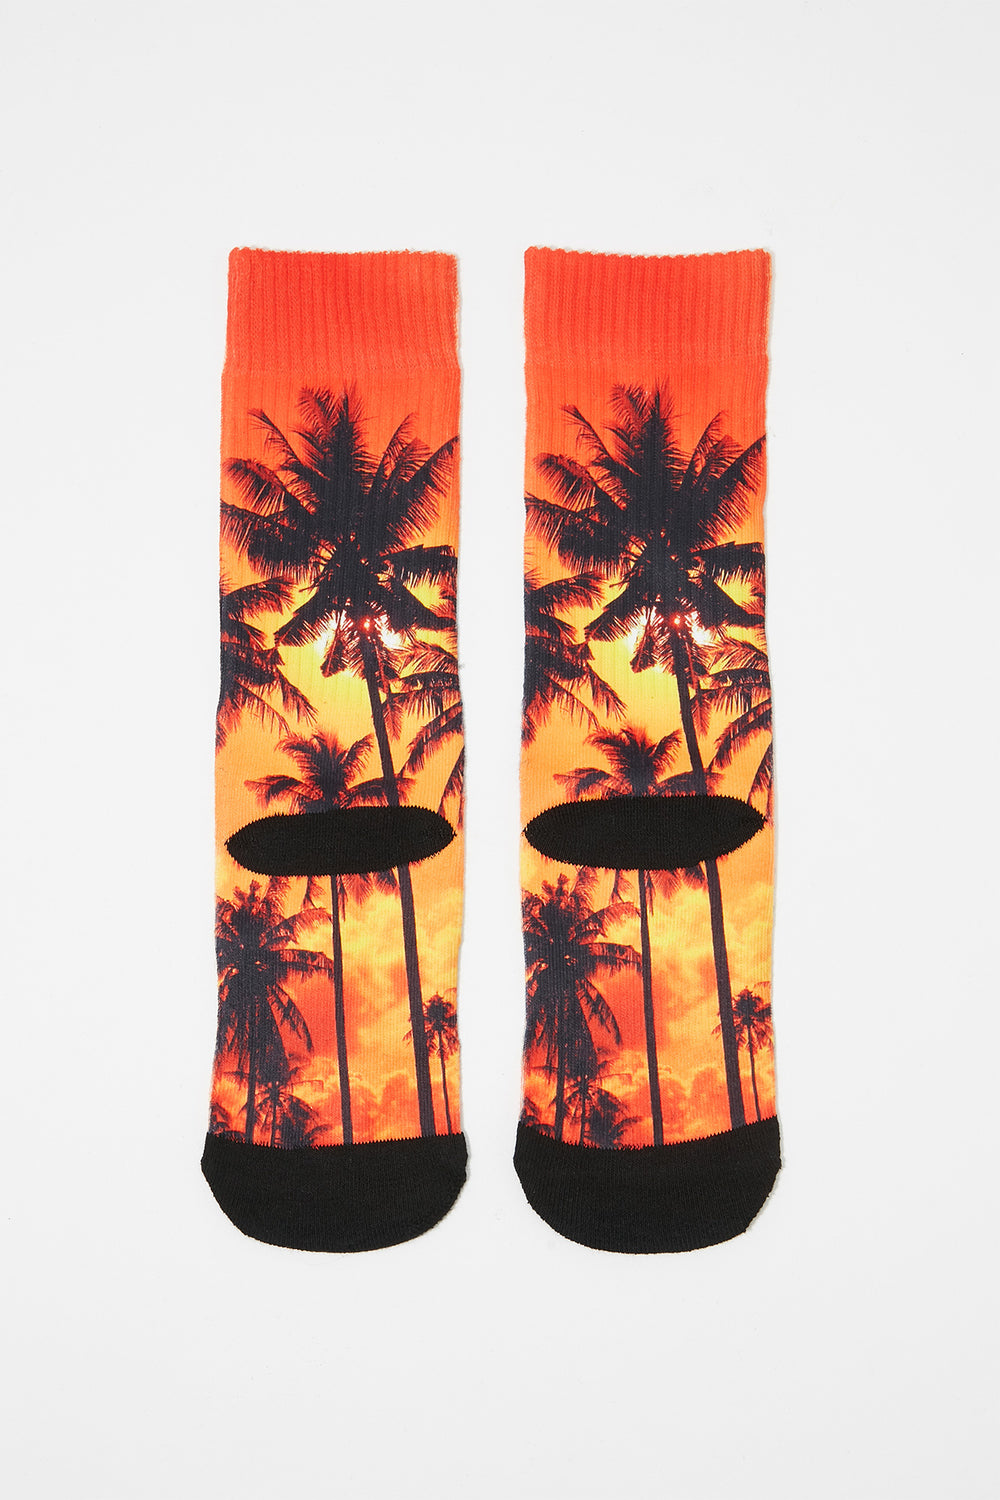 Zoo York Boys Rainbow Crew Socks Orange